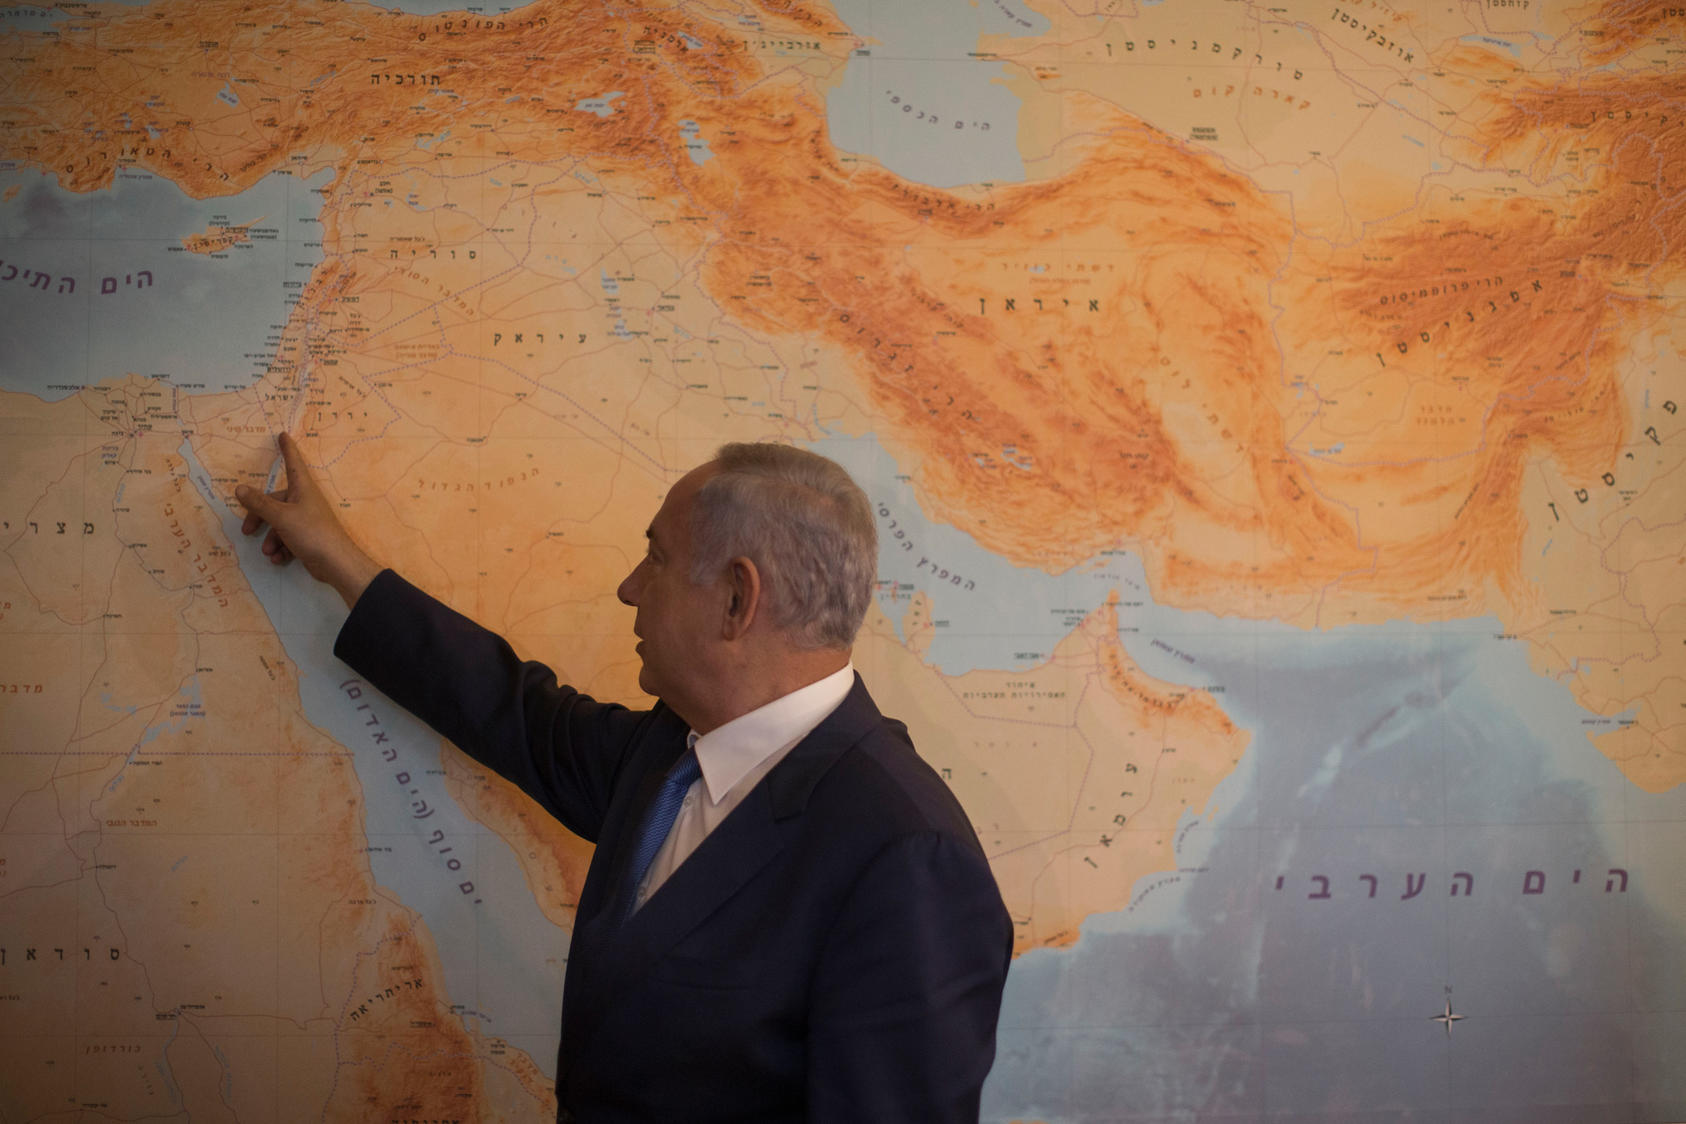 Prime Minister Benjamin Netanyahu with a floor-to-ceiling map that has Israel at its center, in his office in Jerusalem, July 2016. Photo Courtesy of The New York Times/Uriel Sinai